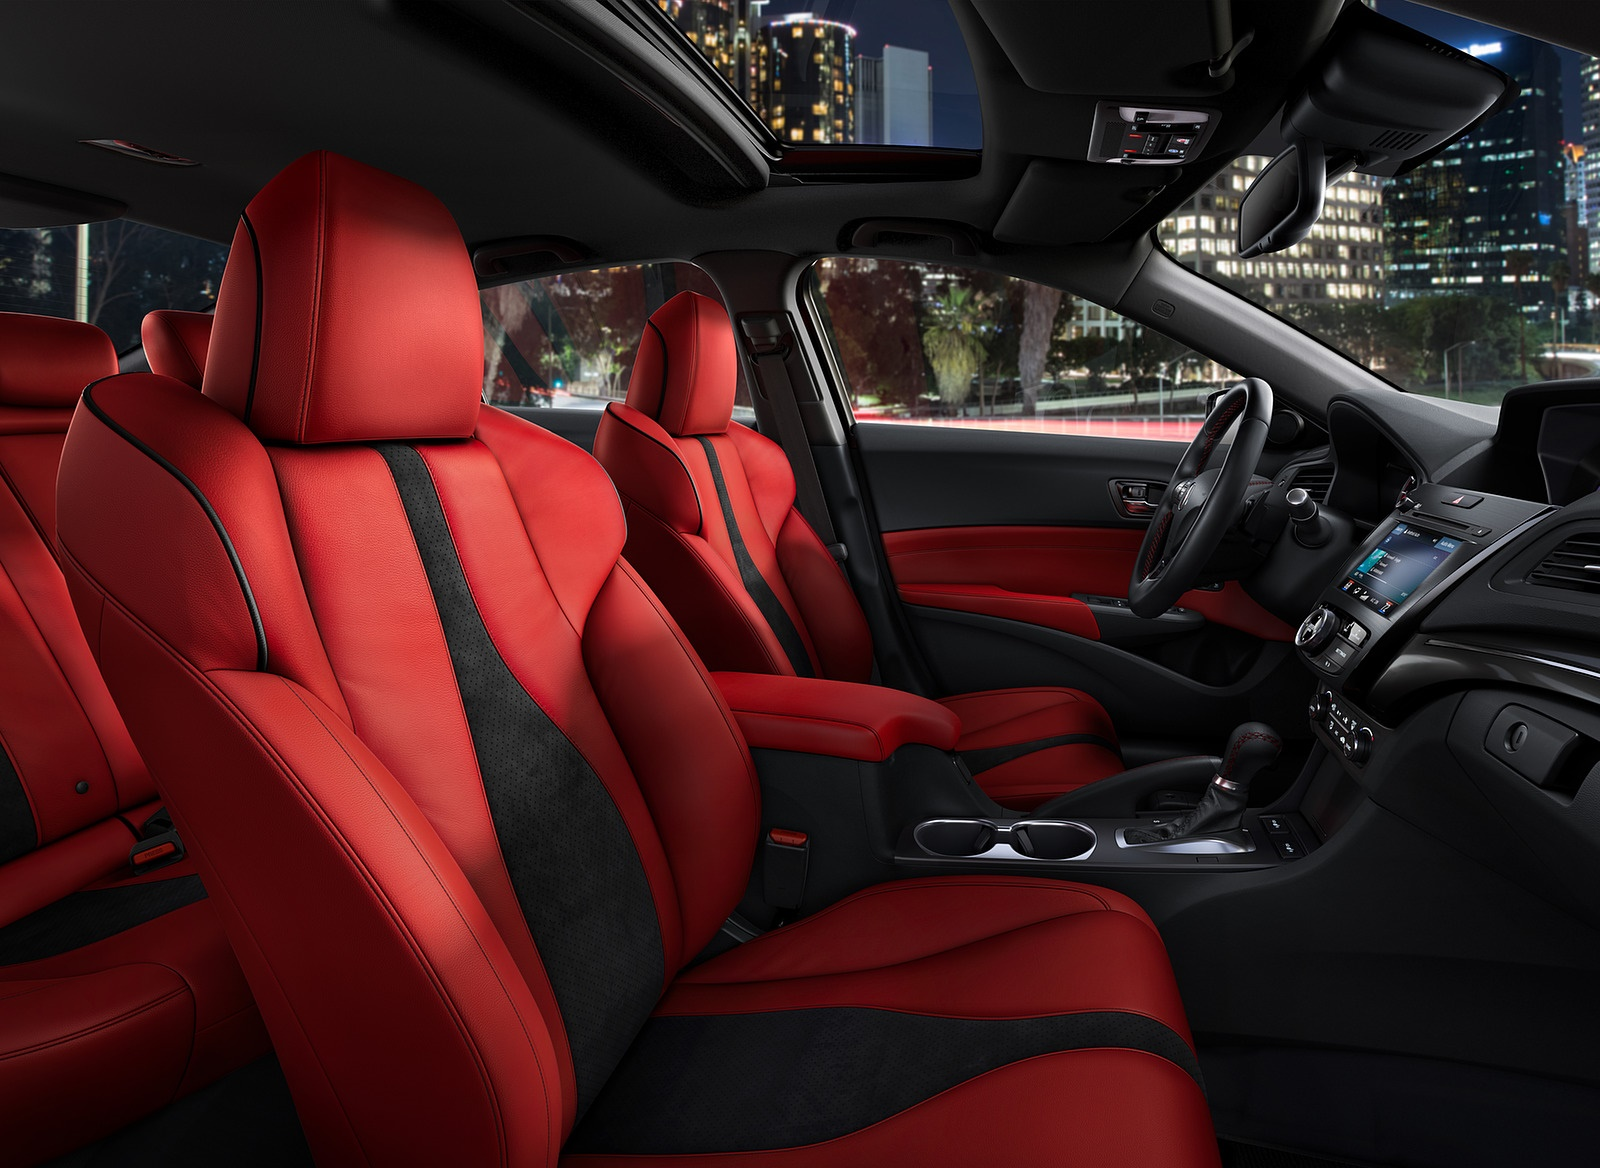 2019 Acura ILX Interior Seats Wallpapers (9)